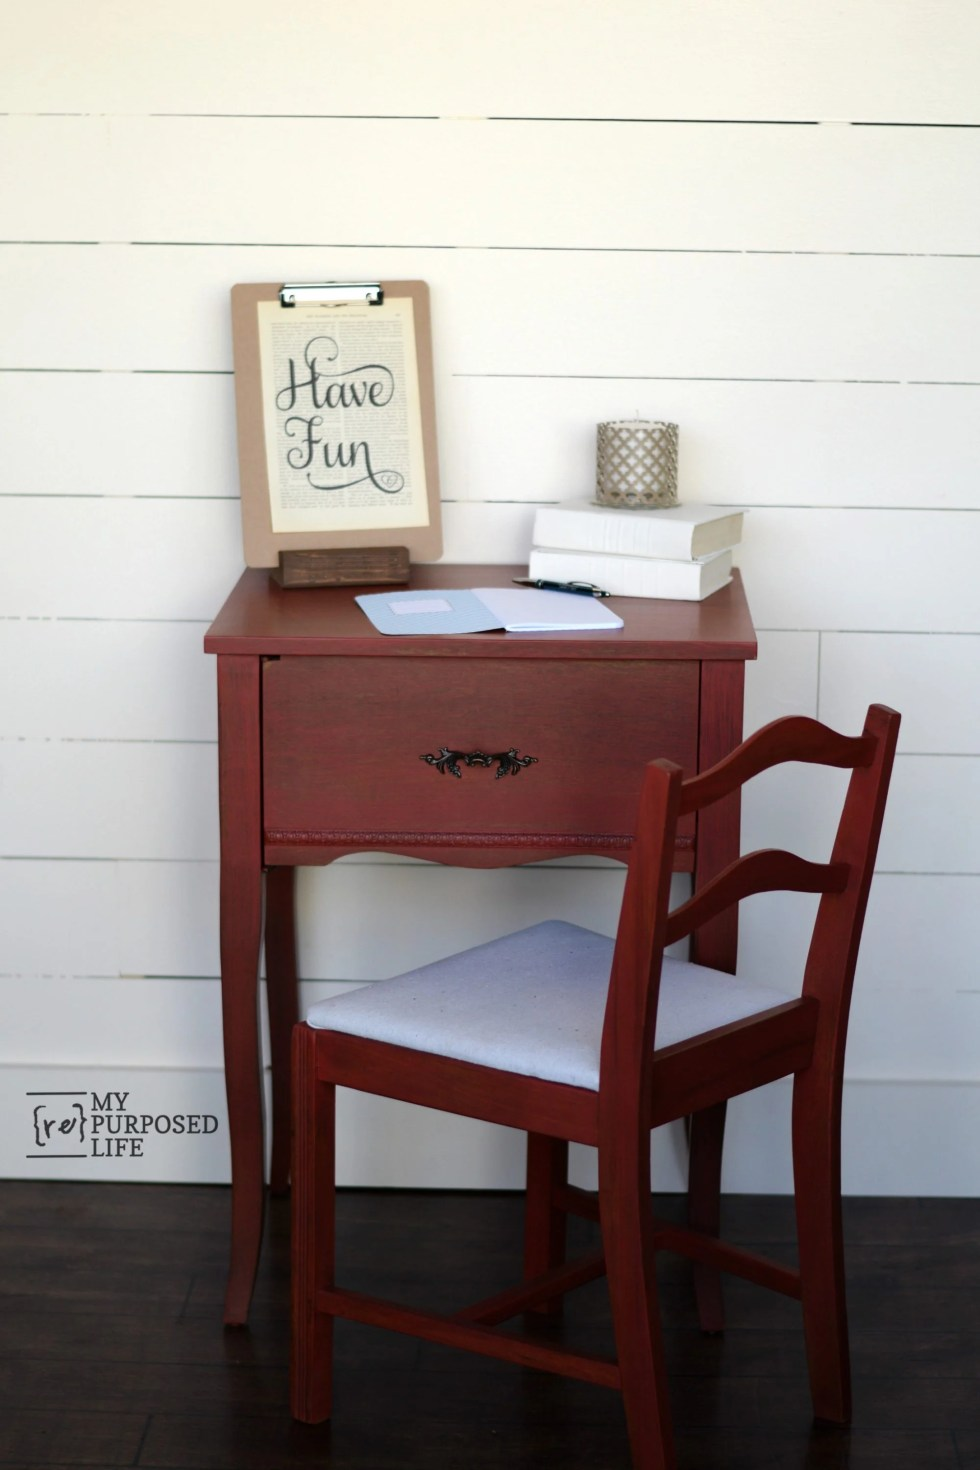 How to turn a sewing cabinet into a fun red side table. The side table paired with a chair makes a great writing desk. Easy project for even a beginner.  #MyRepurposedLife #repurposed #furniture #sewing #cabinet #easy #diy #project via @repurposedlife